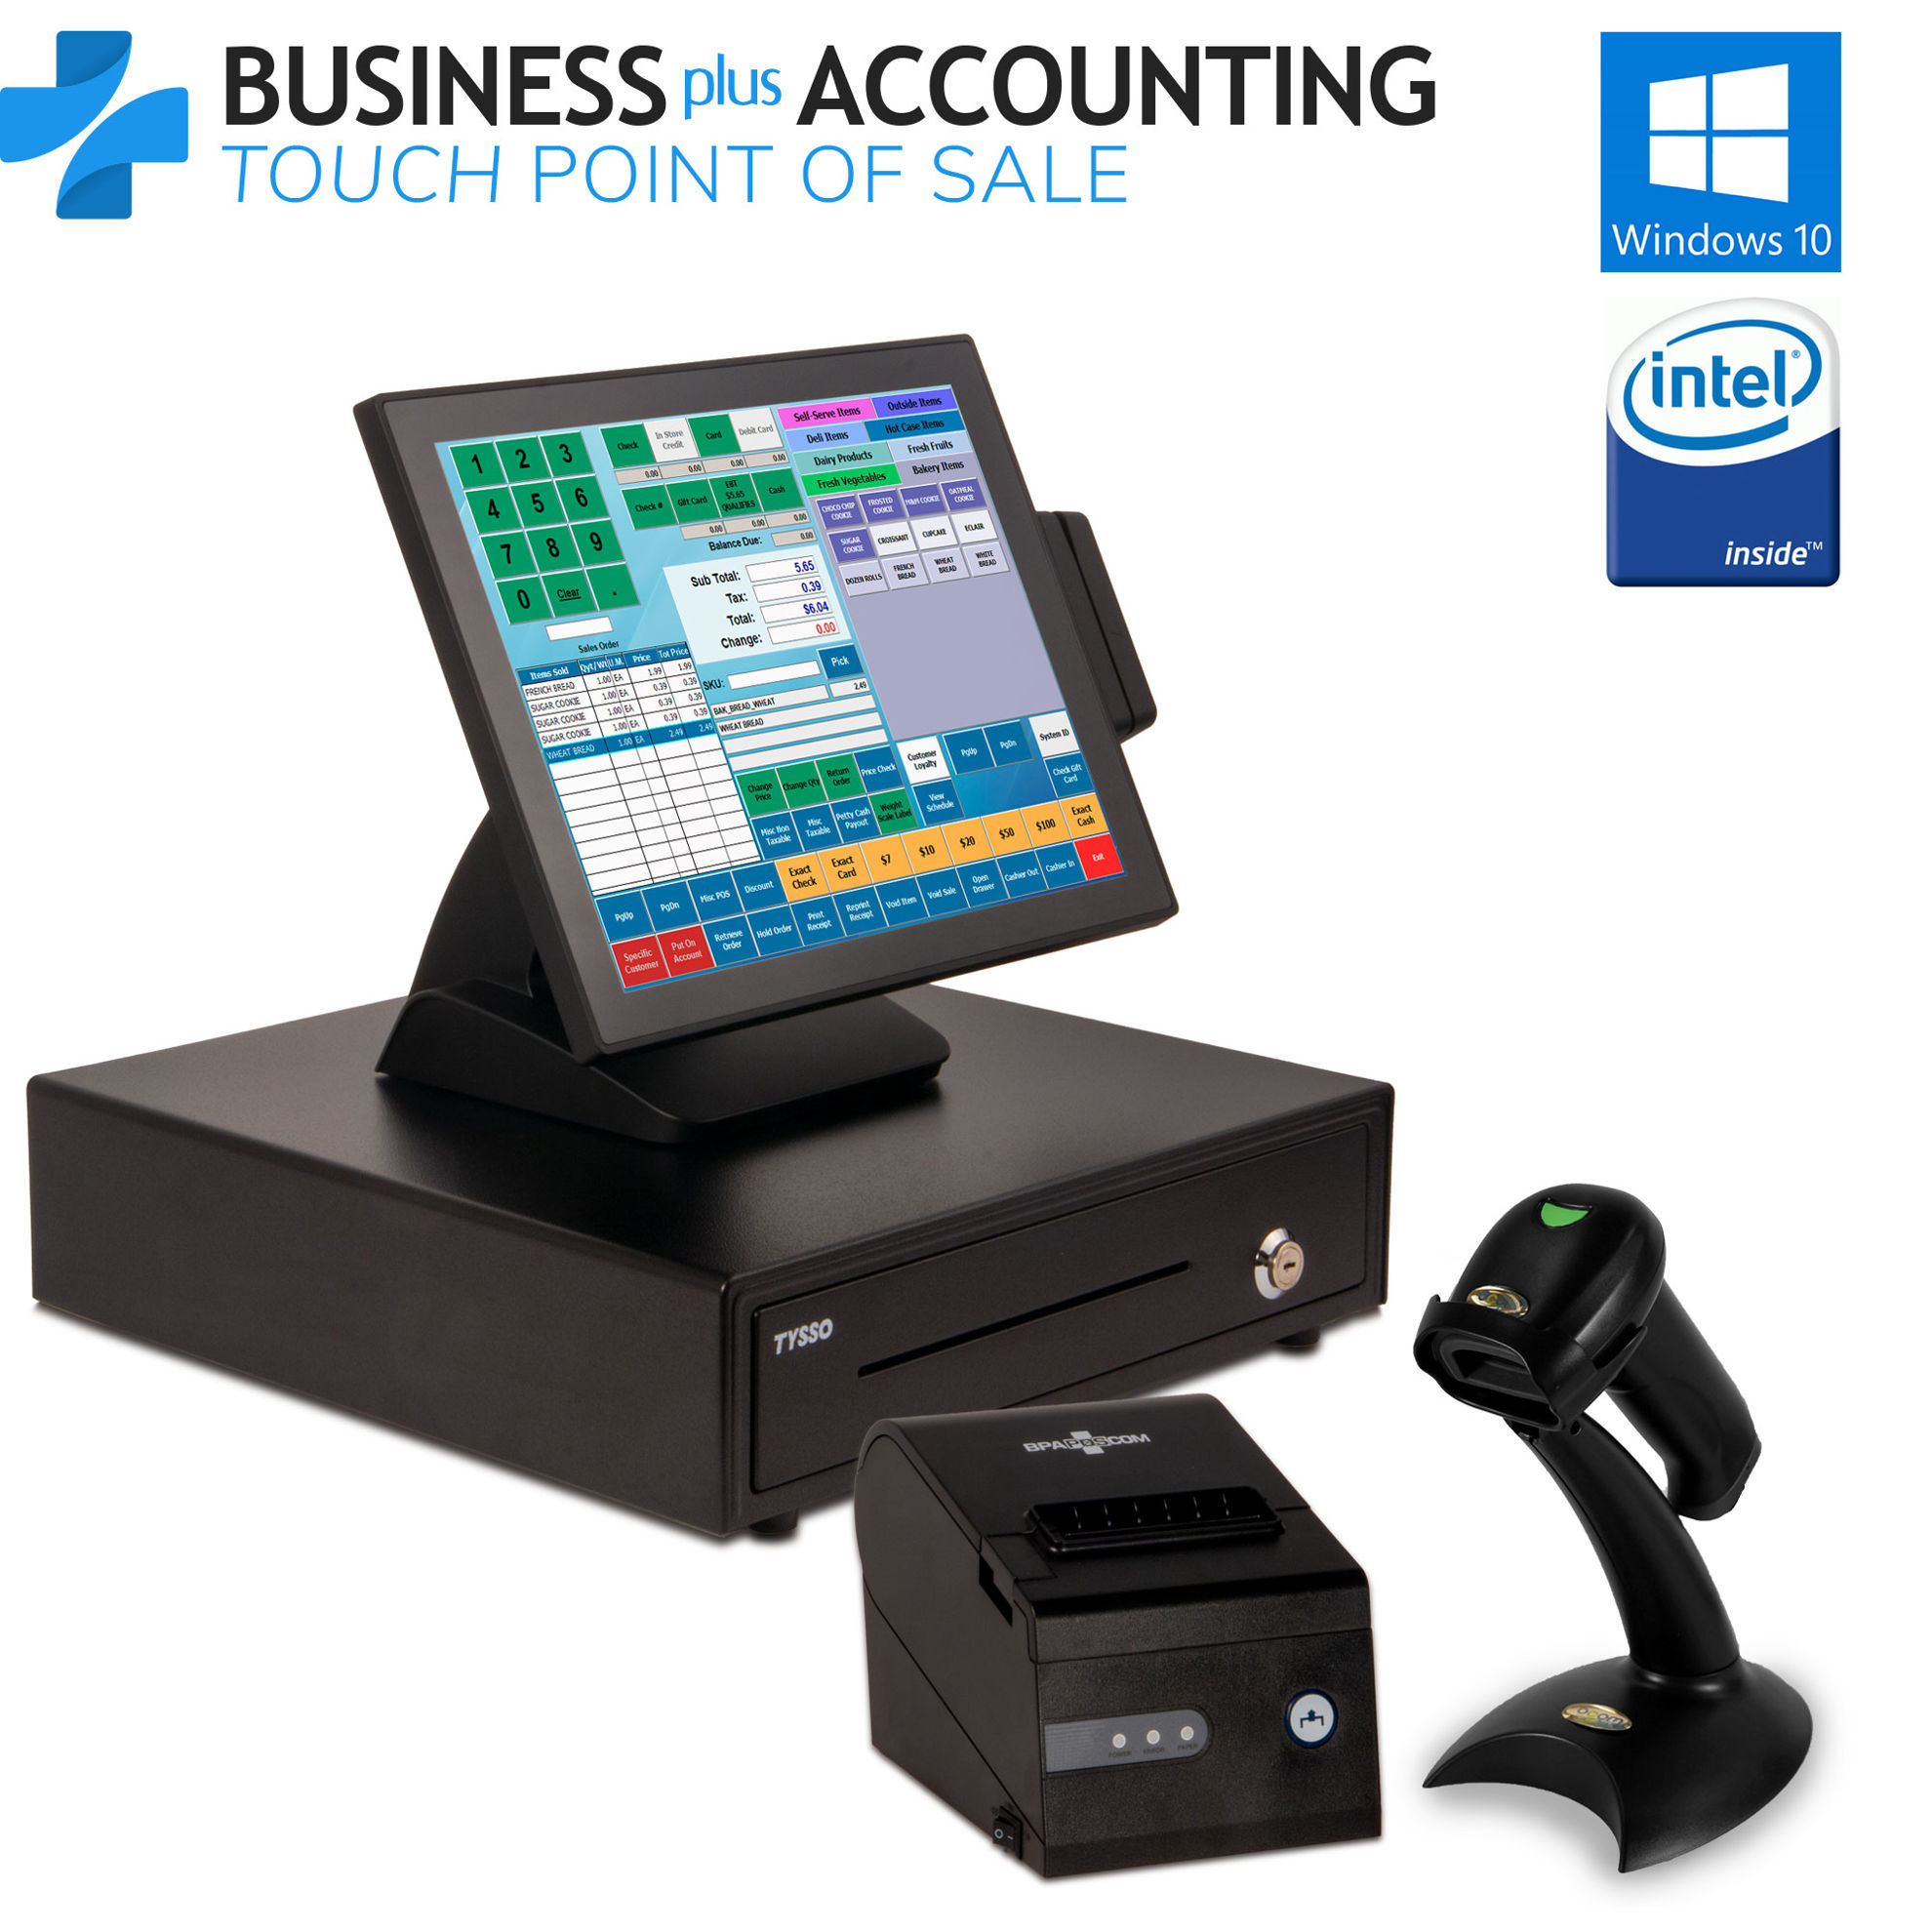 BPA Elite II Touch POS System